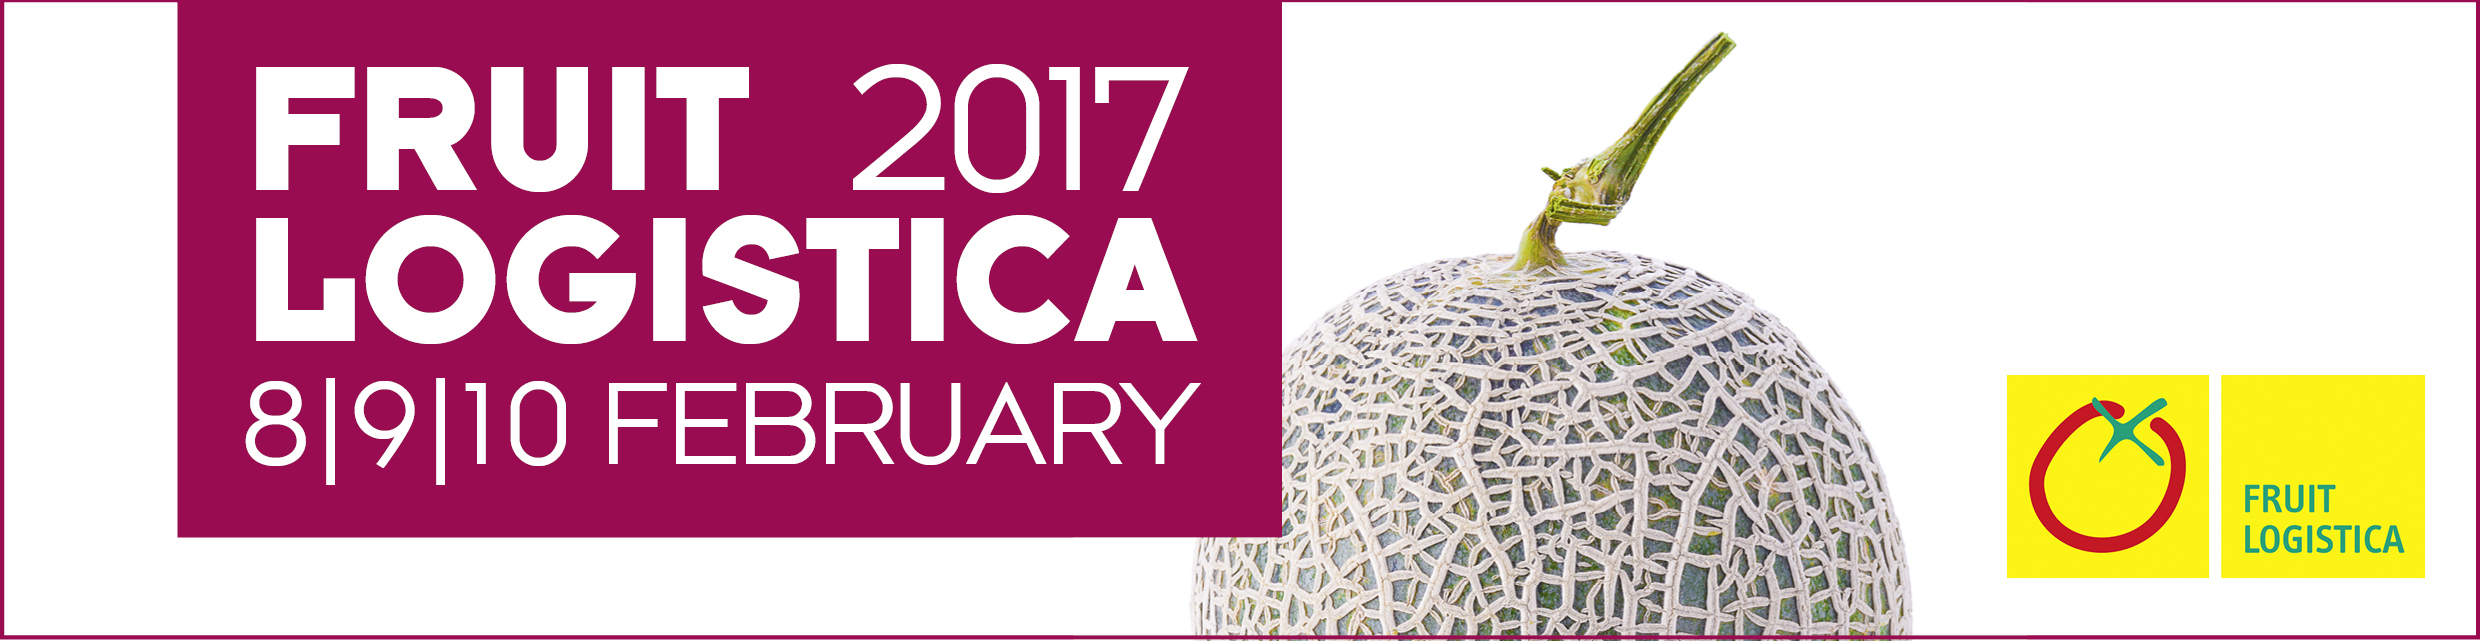 Banner Fruit Logistica 2017